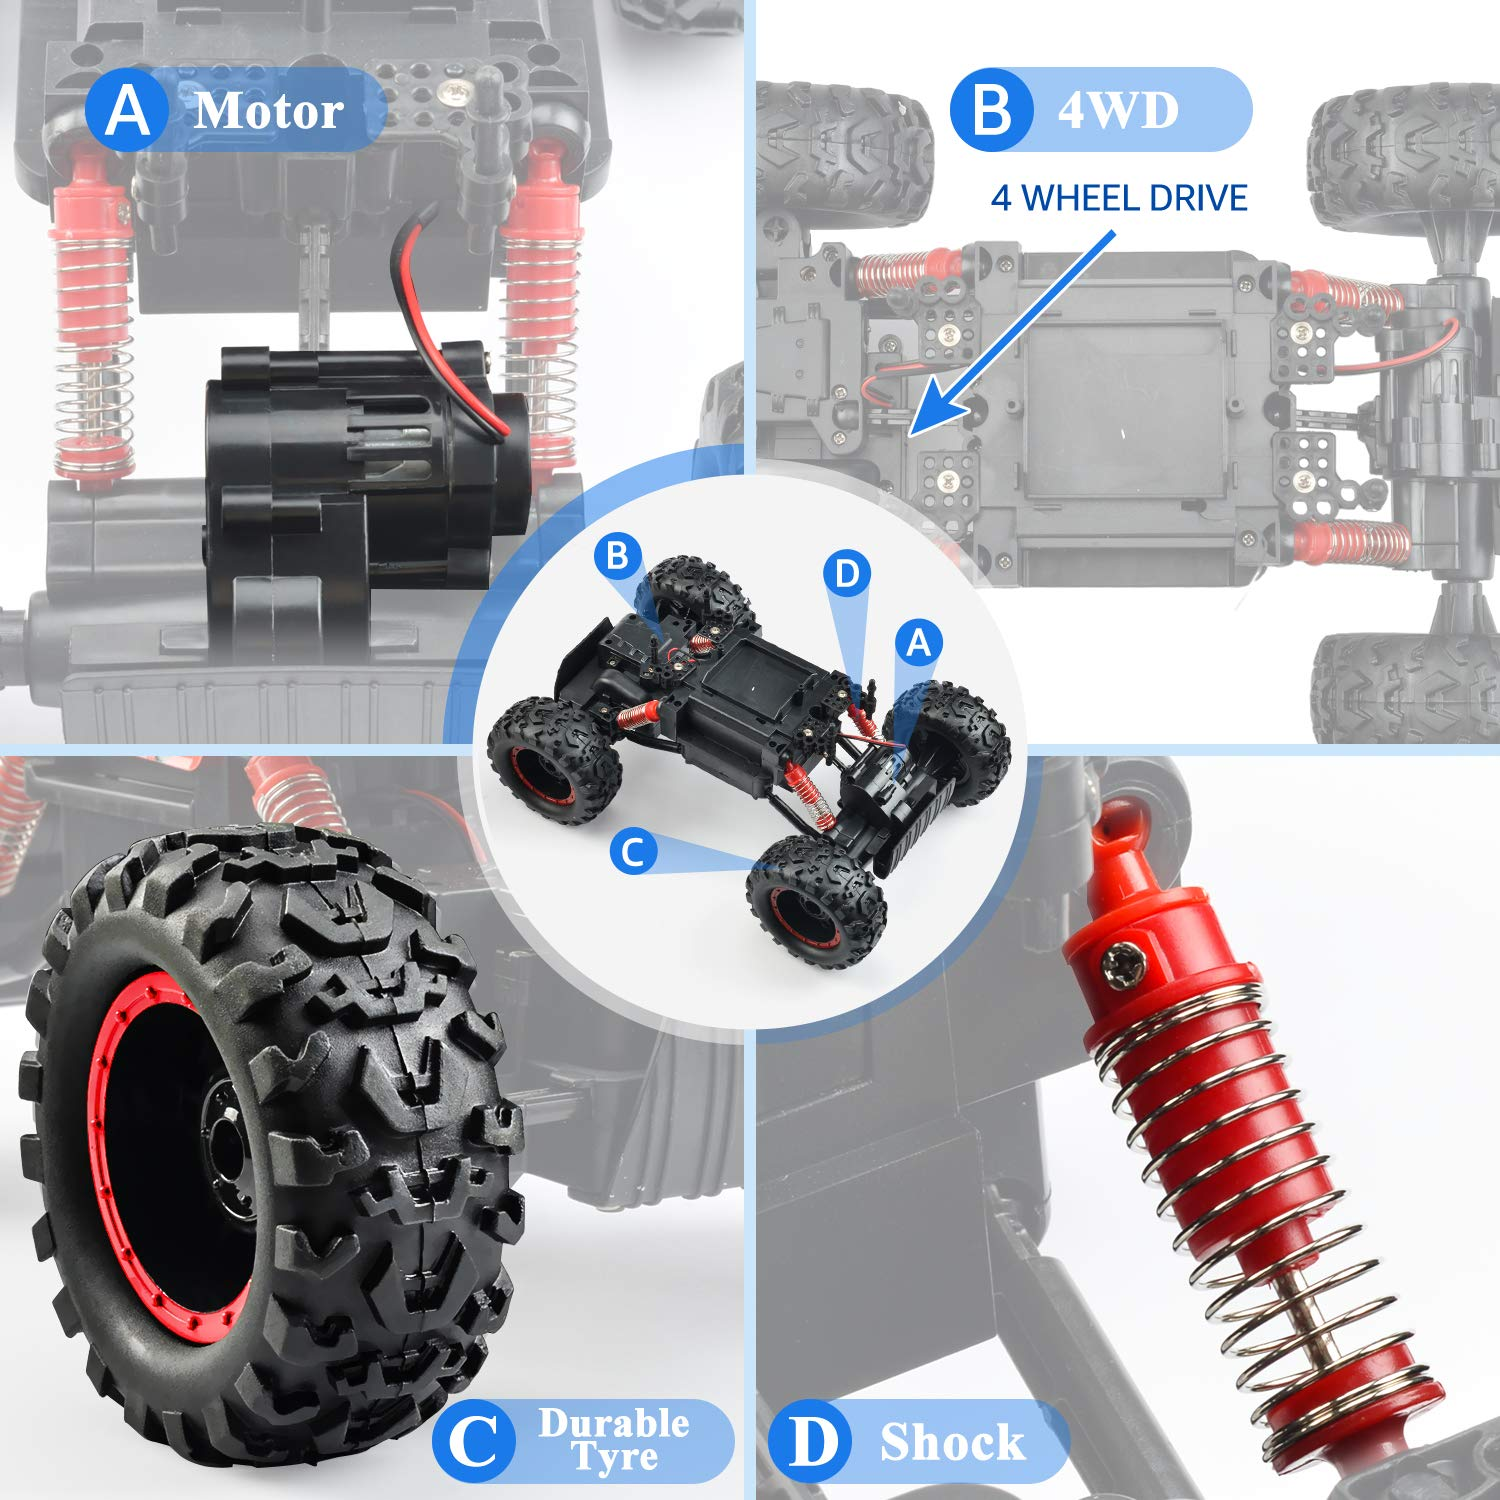 Remote Control Trucks Monster RC Car 1: 12 Scale Off Road Vehicle 2.4Ghz Radio Remote Control Car 4WD High Speed Racing All Terrain Climbing Car Toys Car Gift for Boys (Red) by NQD (Image #3)